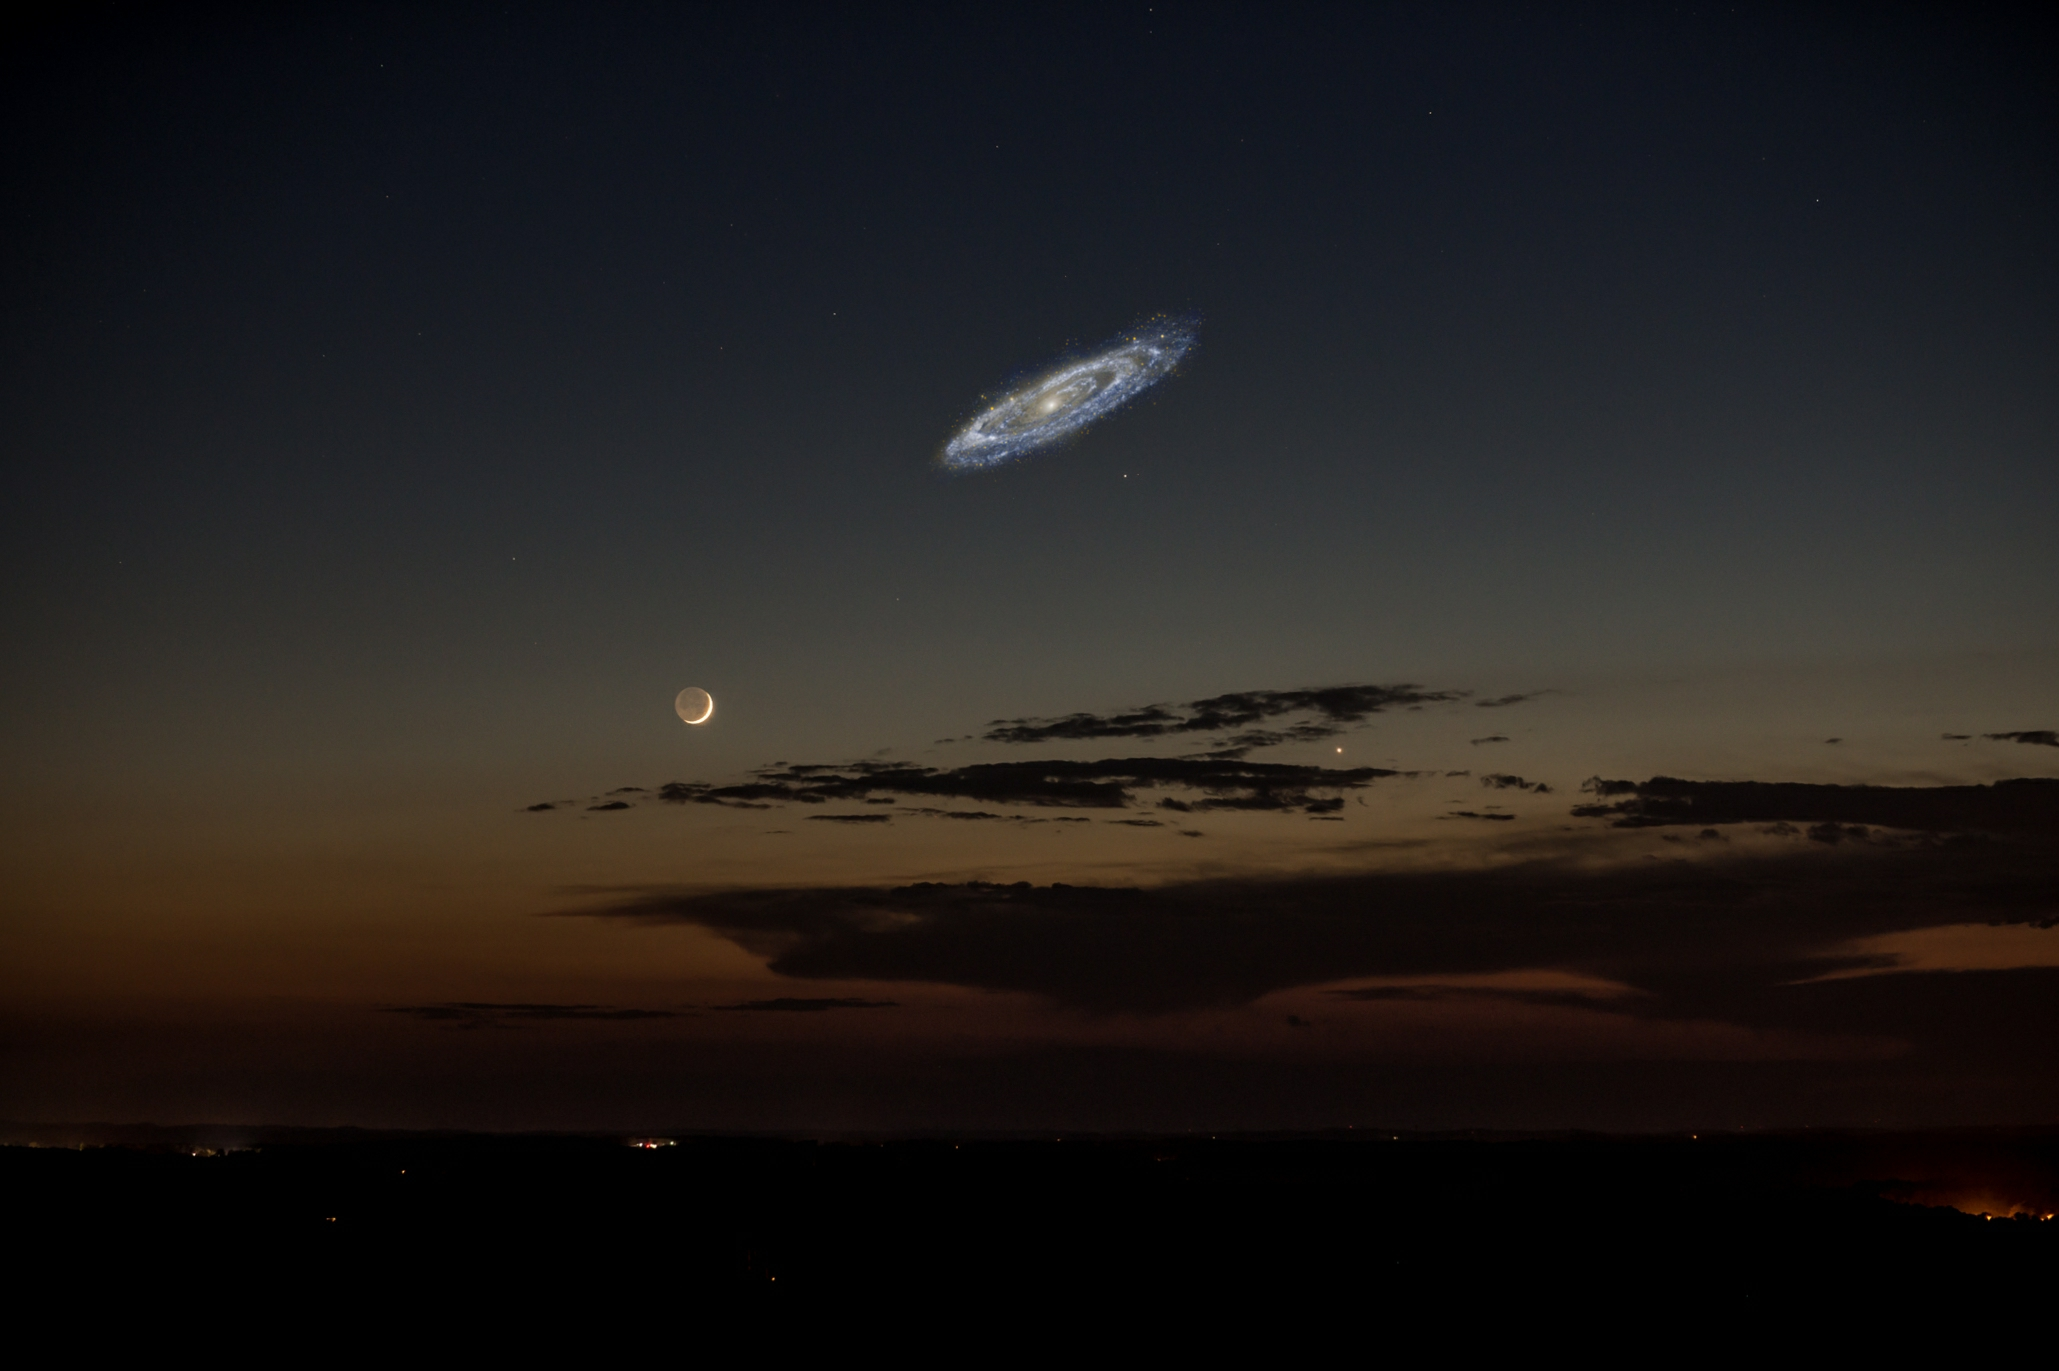 Composite image showing a very bright Andromeda galaxy, next to a crescent moon.